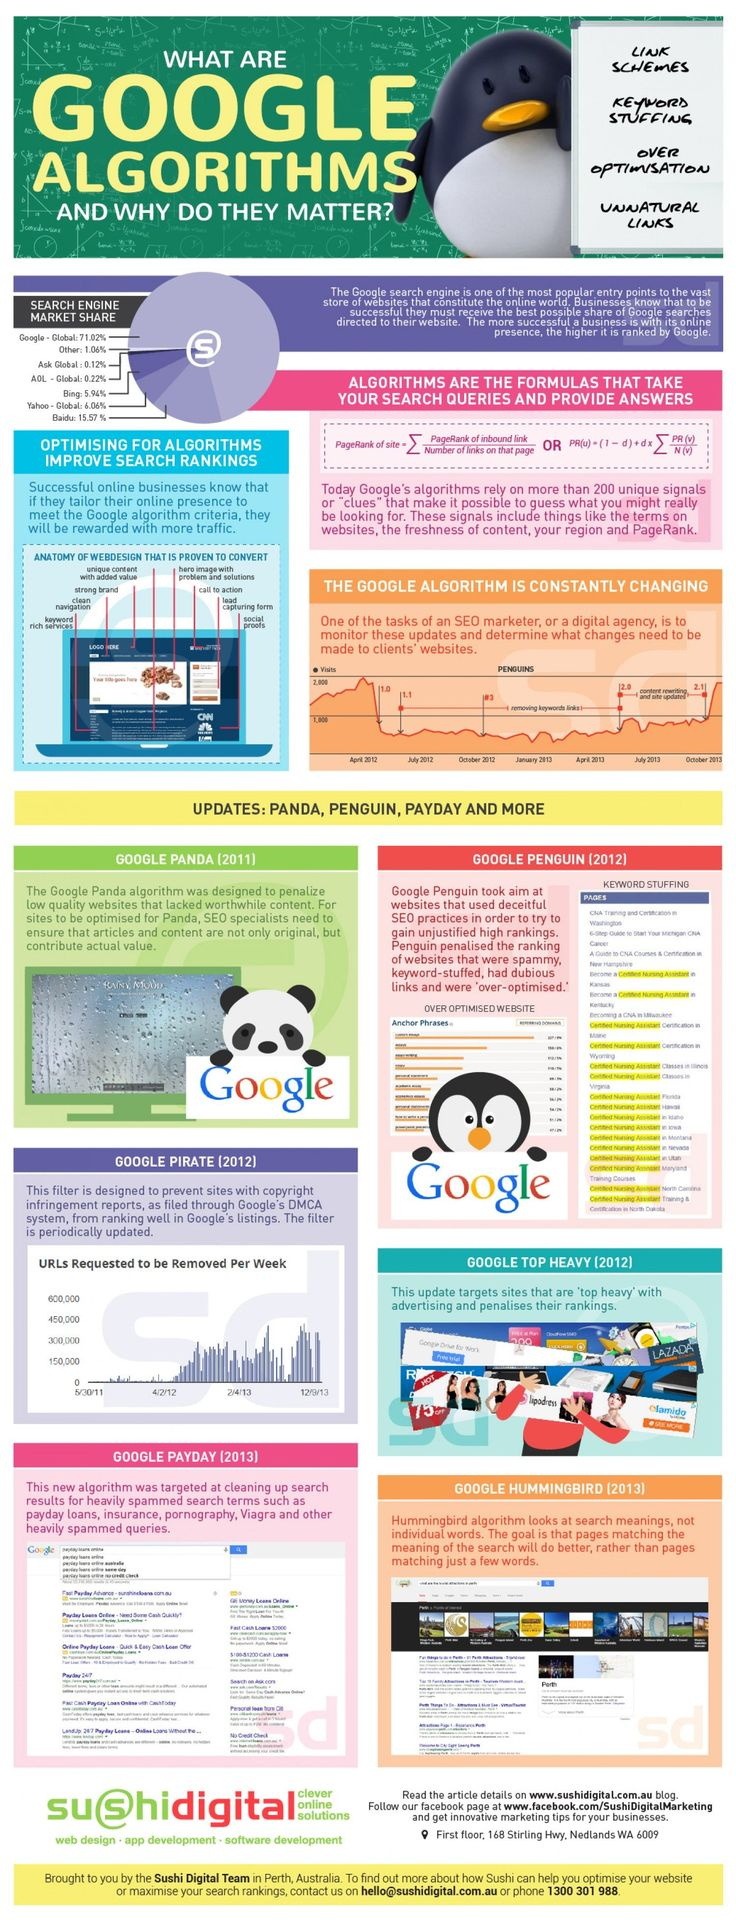 best images about work social media tvs and what are google algorithms and why do they matter do you fancy an infographic there are a lot of them online but if you want your own please